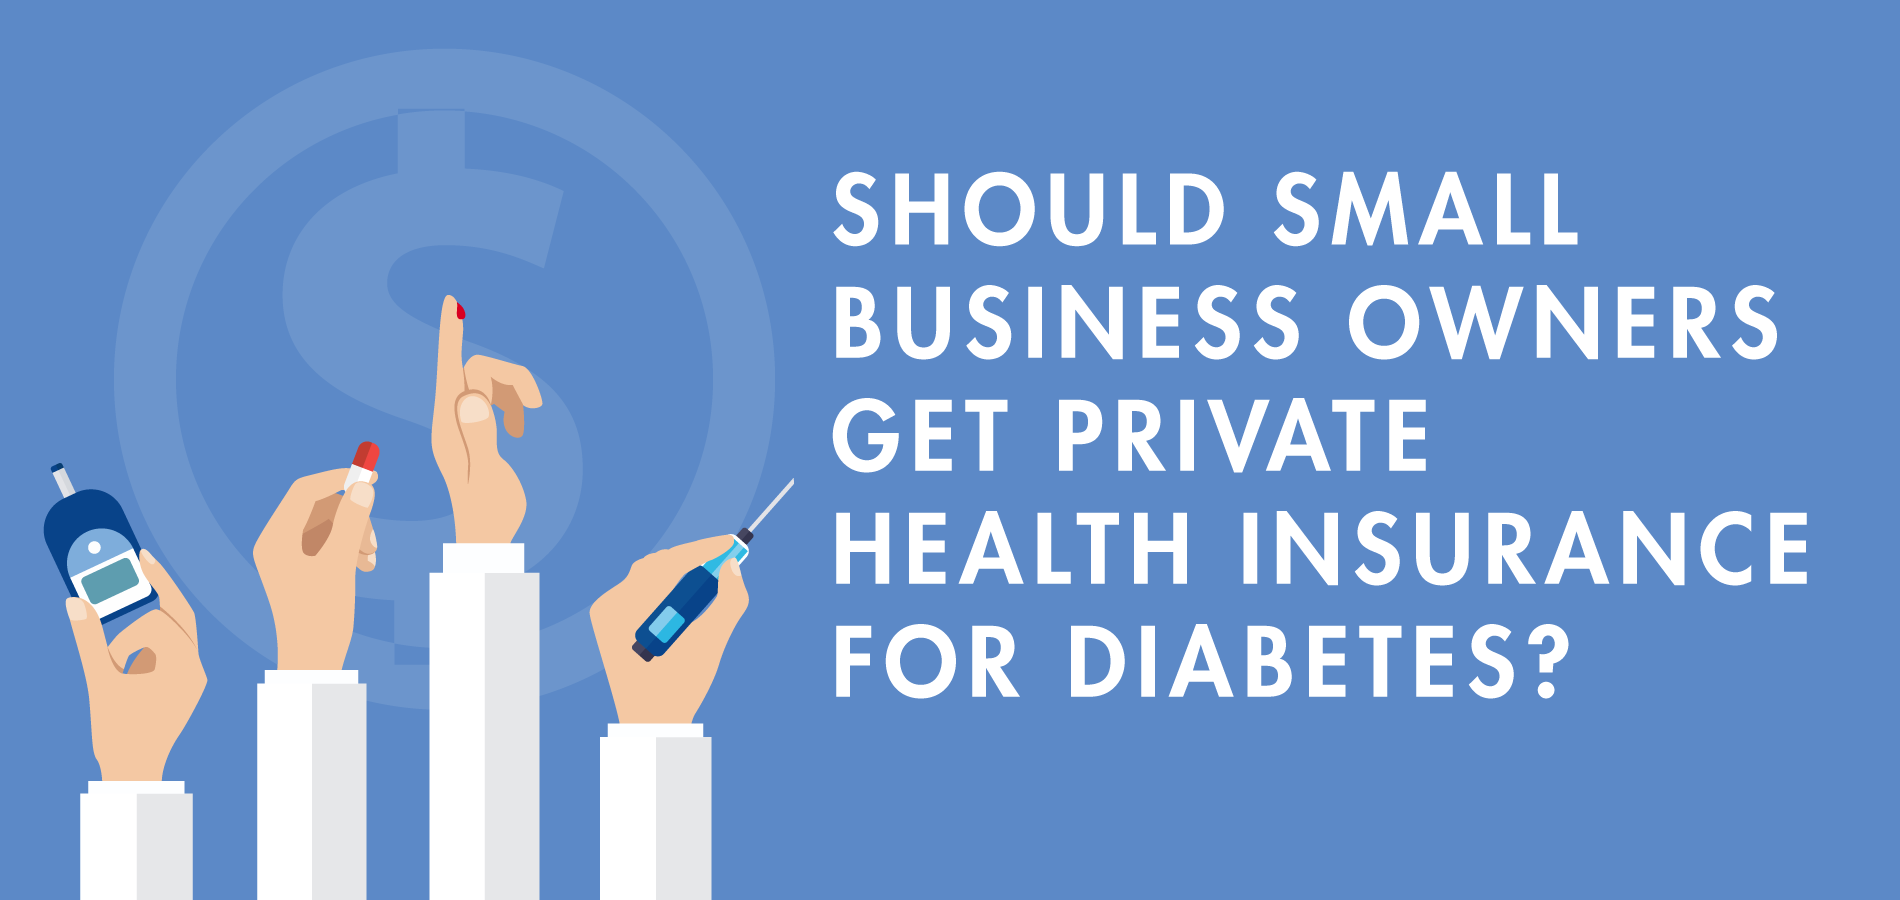 Should Small Business Owners Get Private Health Insurance for Diabetes